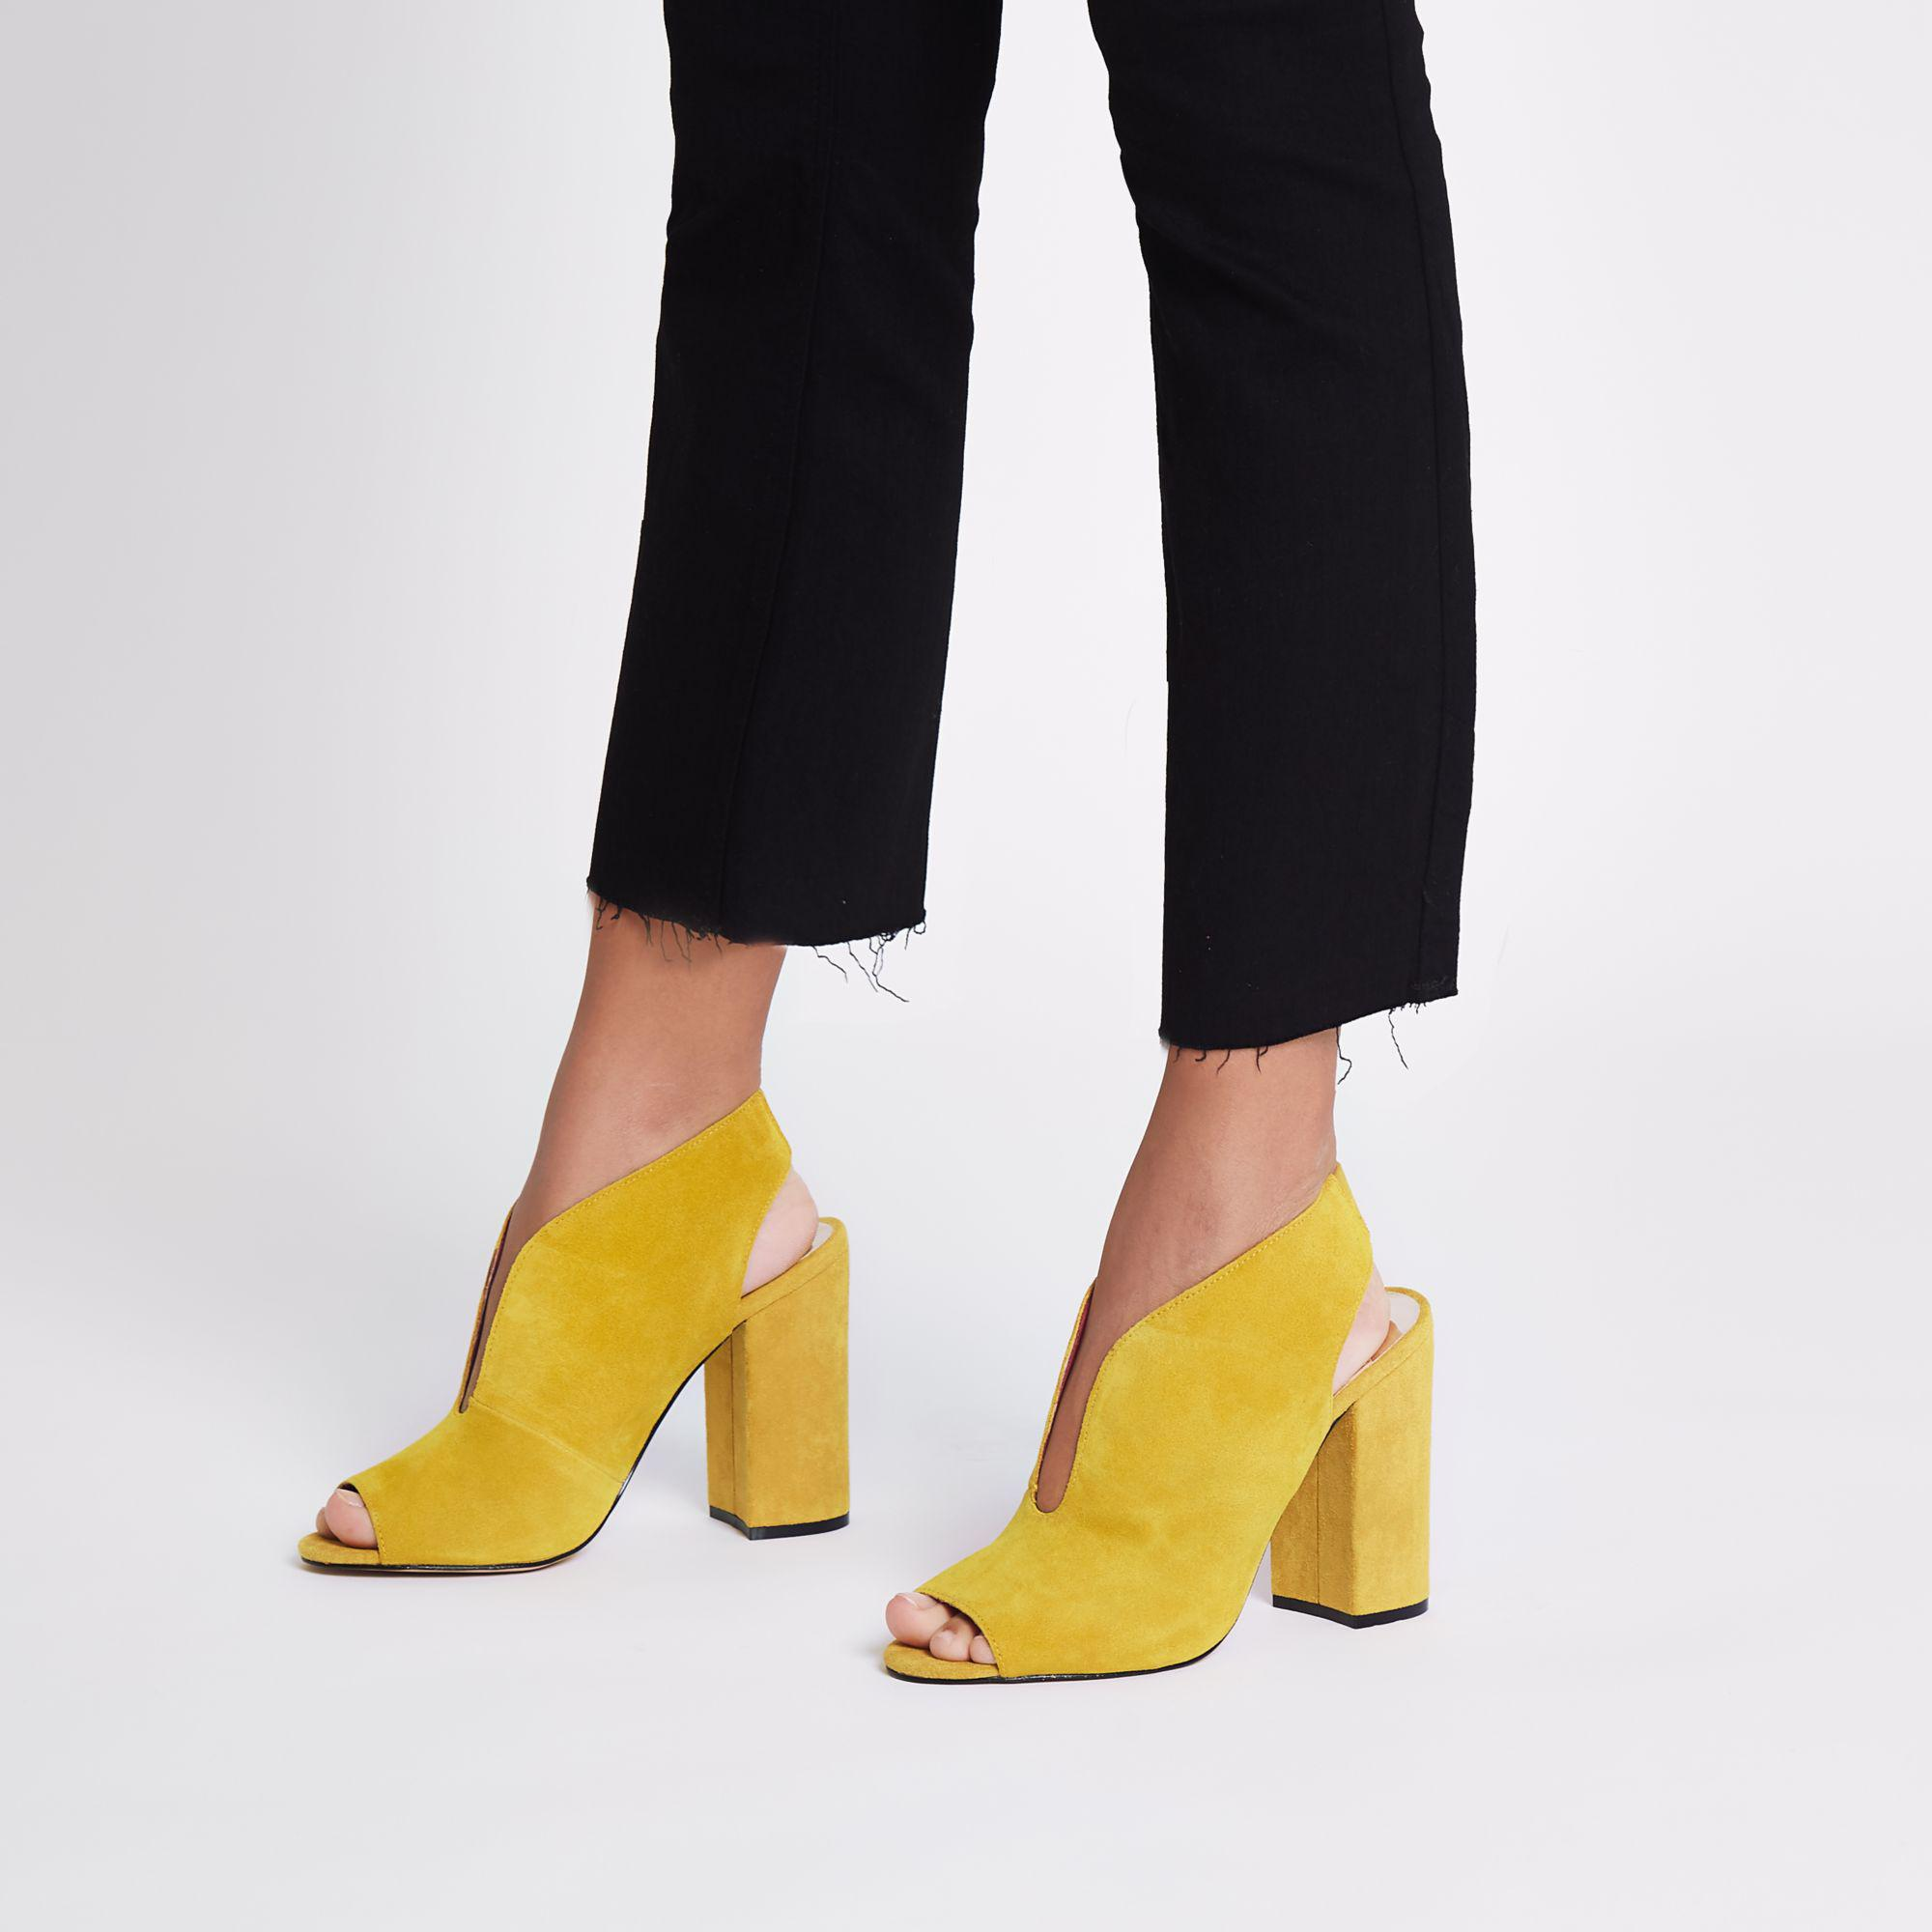 7414487203a River Island Yellow Suede Curve Vamp Block Heel Shoe Boots in Yellow ...